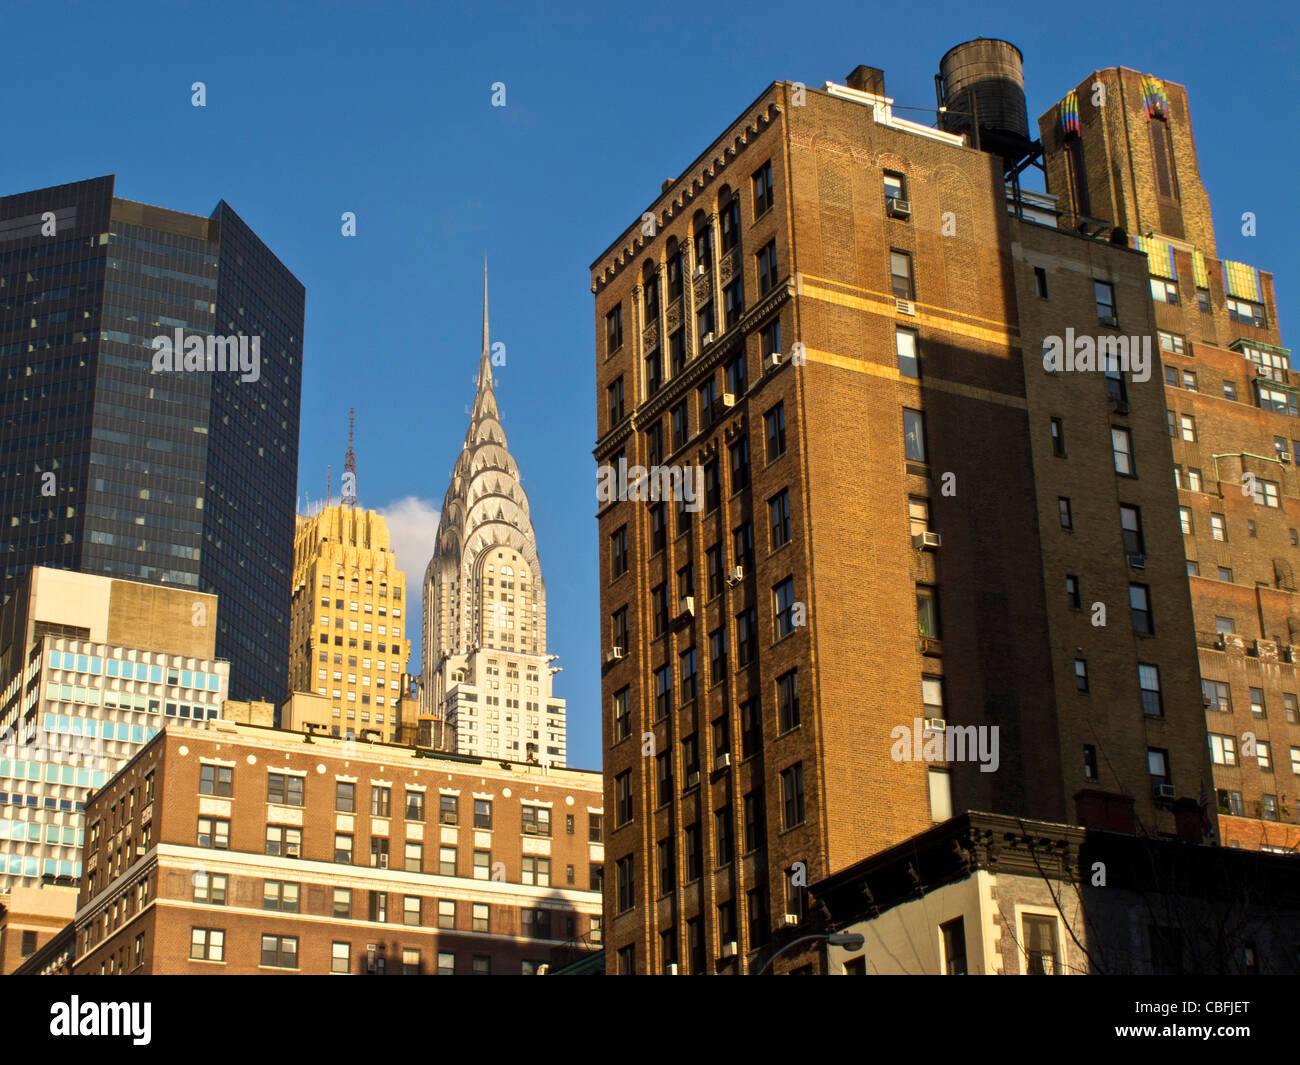 Top of Chrysler Building and Brownstone Building downtown Manhattan, New York City, New York, USA, Anthony Arendt - Stock Image